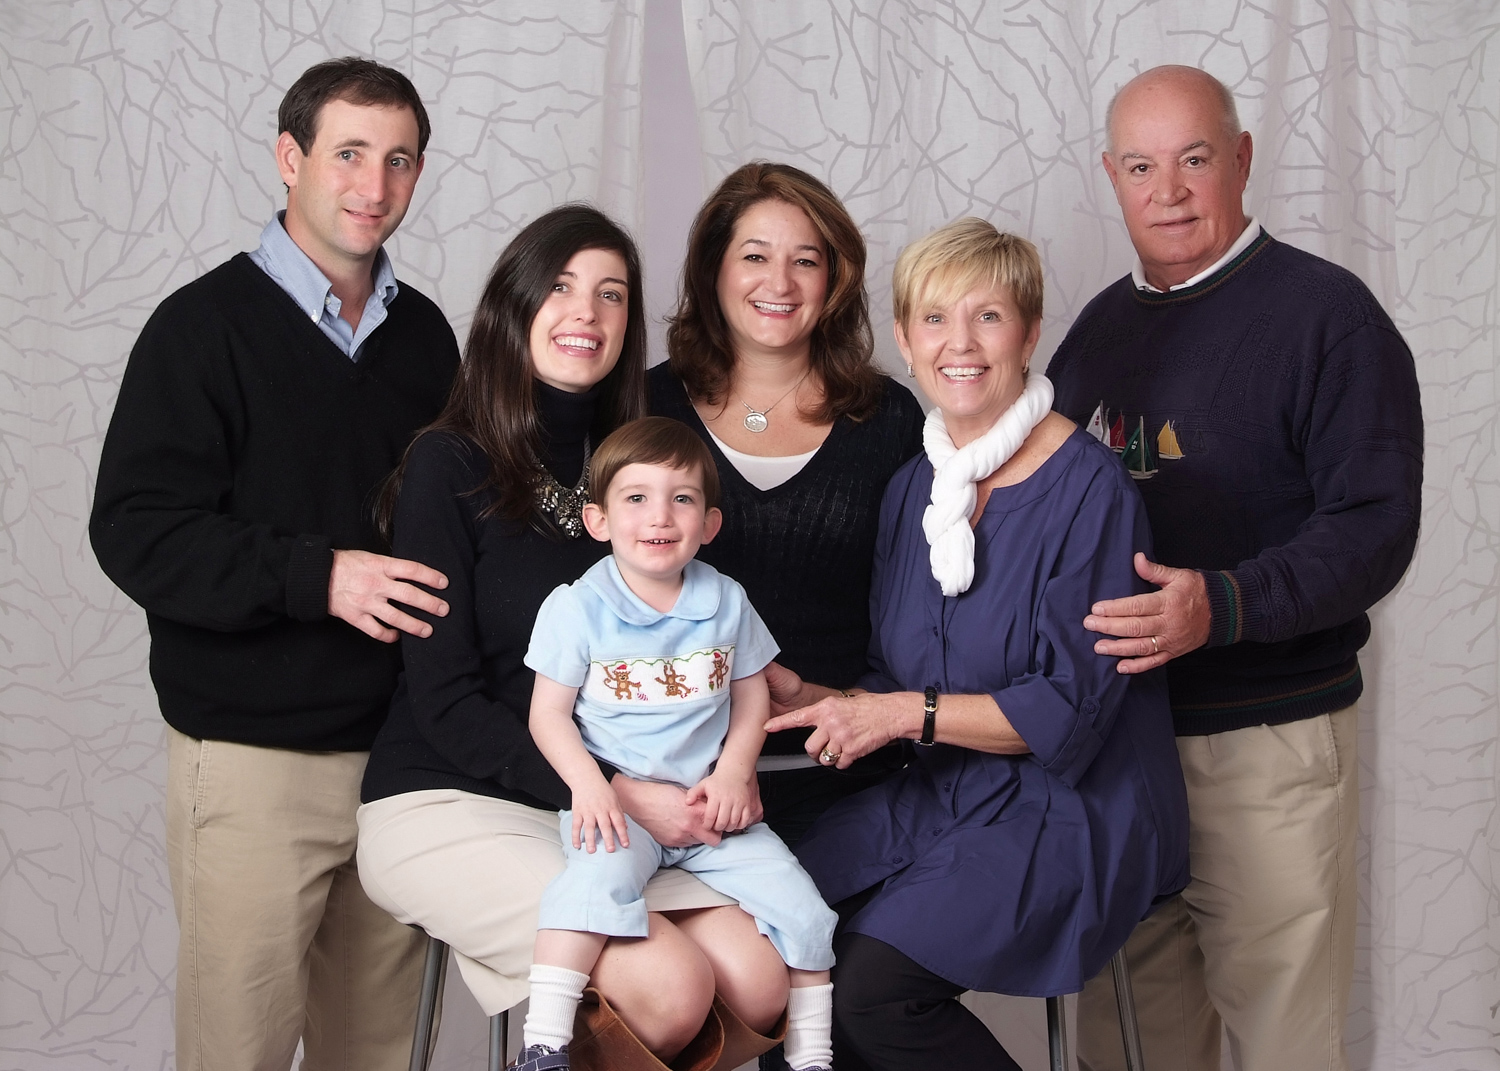 family_pictures_portraits_beaufort-4.jpg